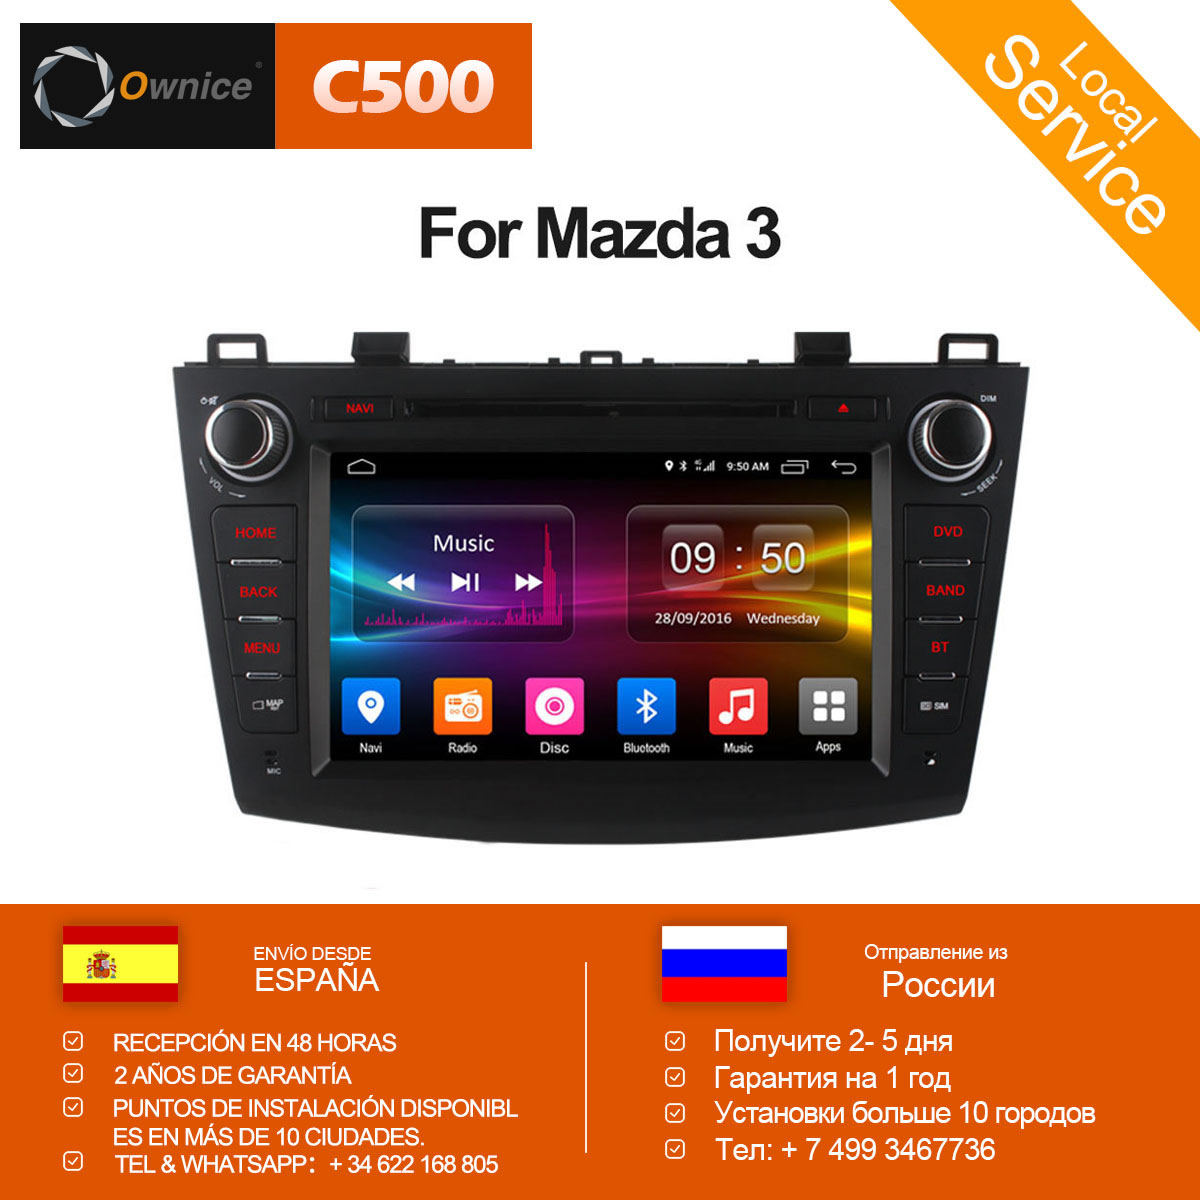 Ownice C500 Octa 8 Core Android 6.0 Car DVD player For Mazda 3 2008-2013 WIFI Radio GPS Navi OBD DVR 2GB RAM 32GB ROM Support 4G 2gb 32gb 8 8 android 7 1 car dvd player for bmw series 5 e60 e61 e62 gps navi idrive wifi bluetooth radio rds free camera map